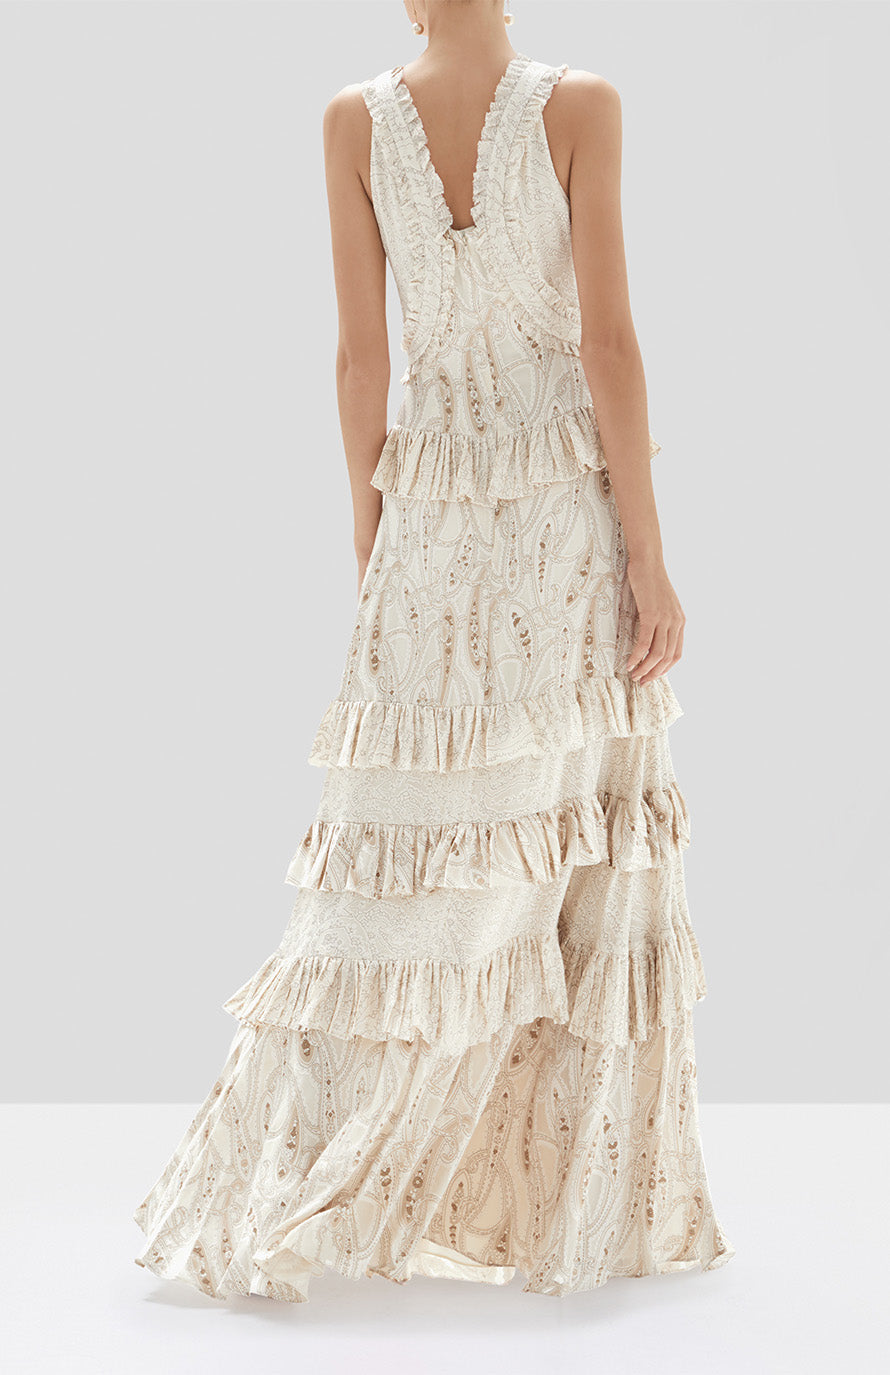 Alexis Rafaela Dress in Cream Paisley from the Holiday 2019 Ready To Wear Collection - Rear View